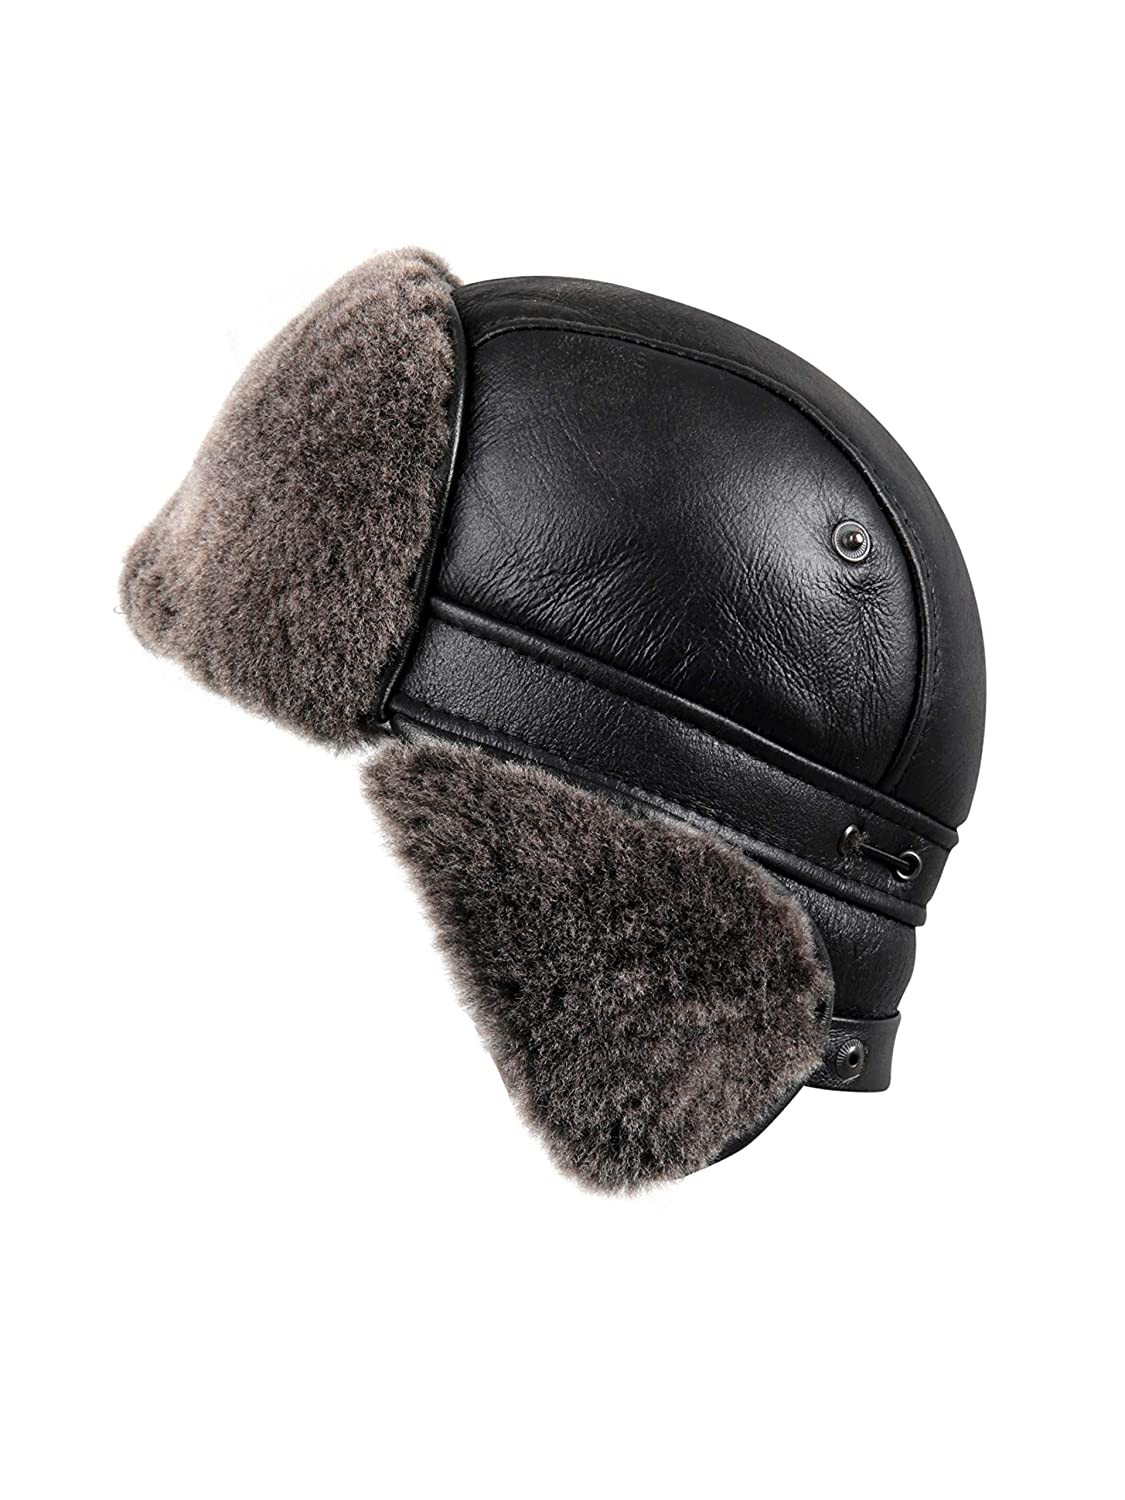 3e128eb5728 Amazon.com   Zavelio Unisex Shearling Sheepskin Aviator Russian Ushanka  with Snap Hat   Sports   Outdoors